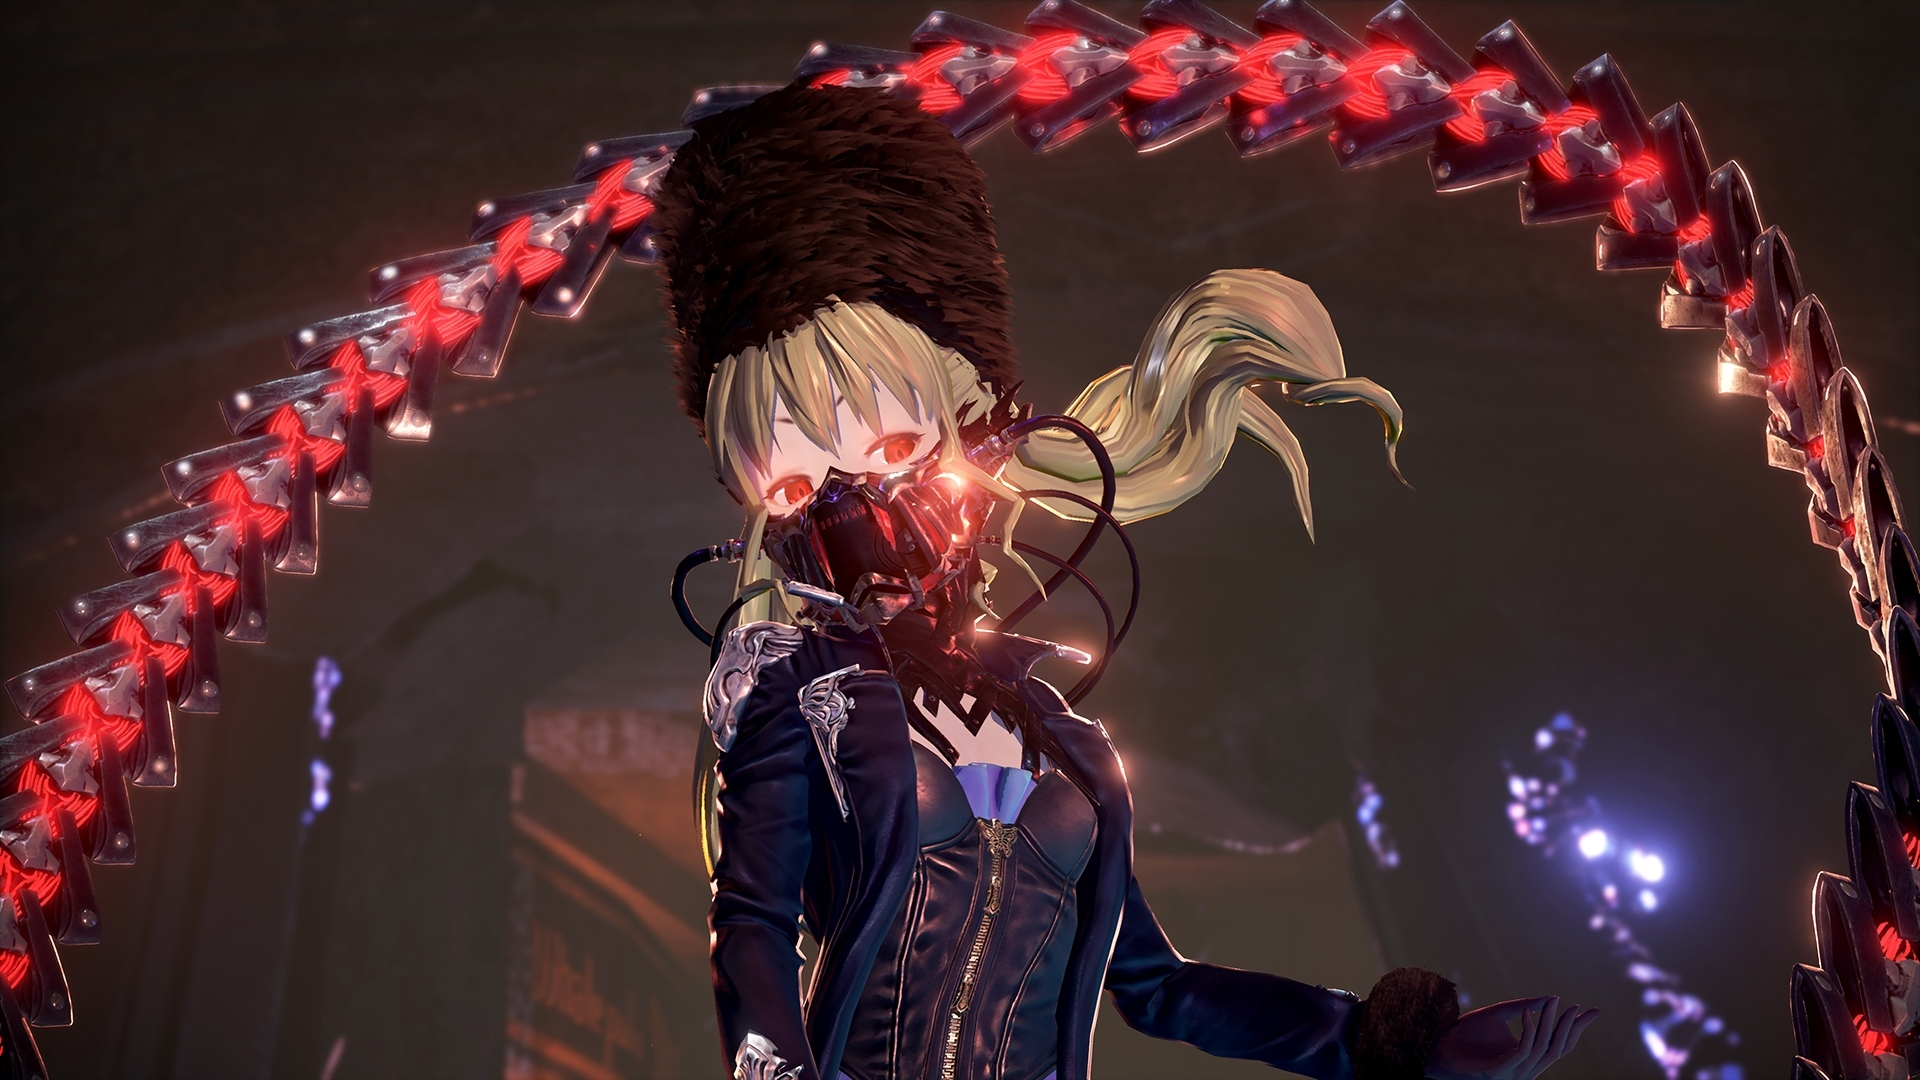 Nice Code Vein Girl Mask Game x wallpaper Gamer Nerd